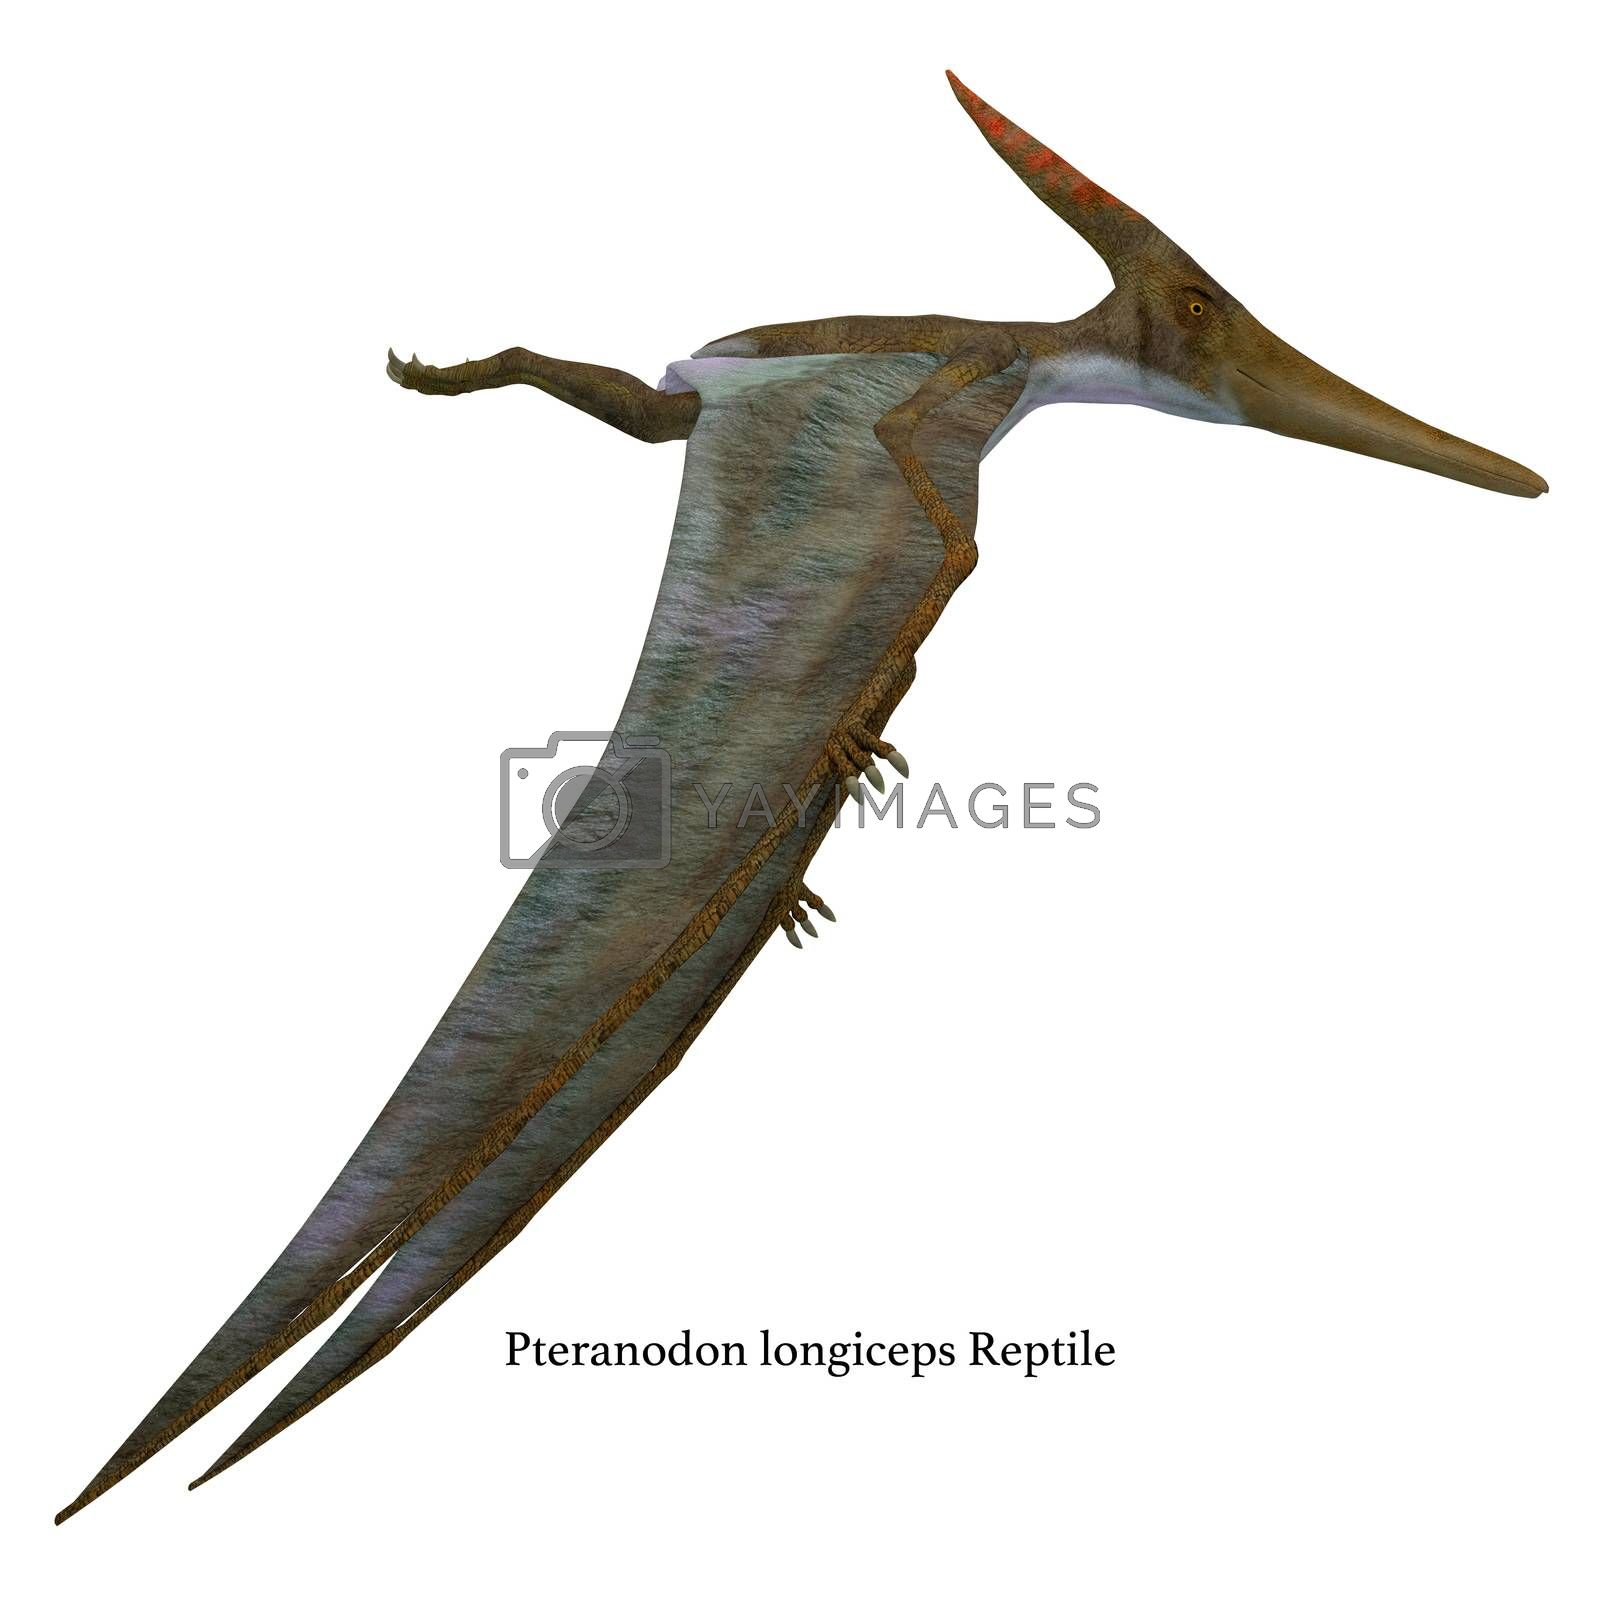 Pteranodon was a flying carnivorous reptile that lived in North America in the Cretaceous Period.